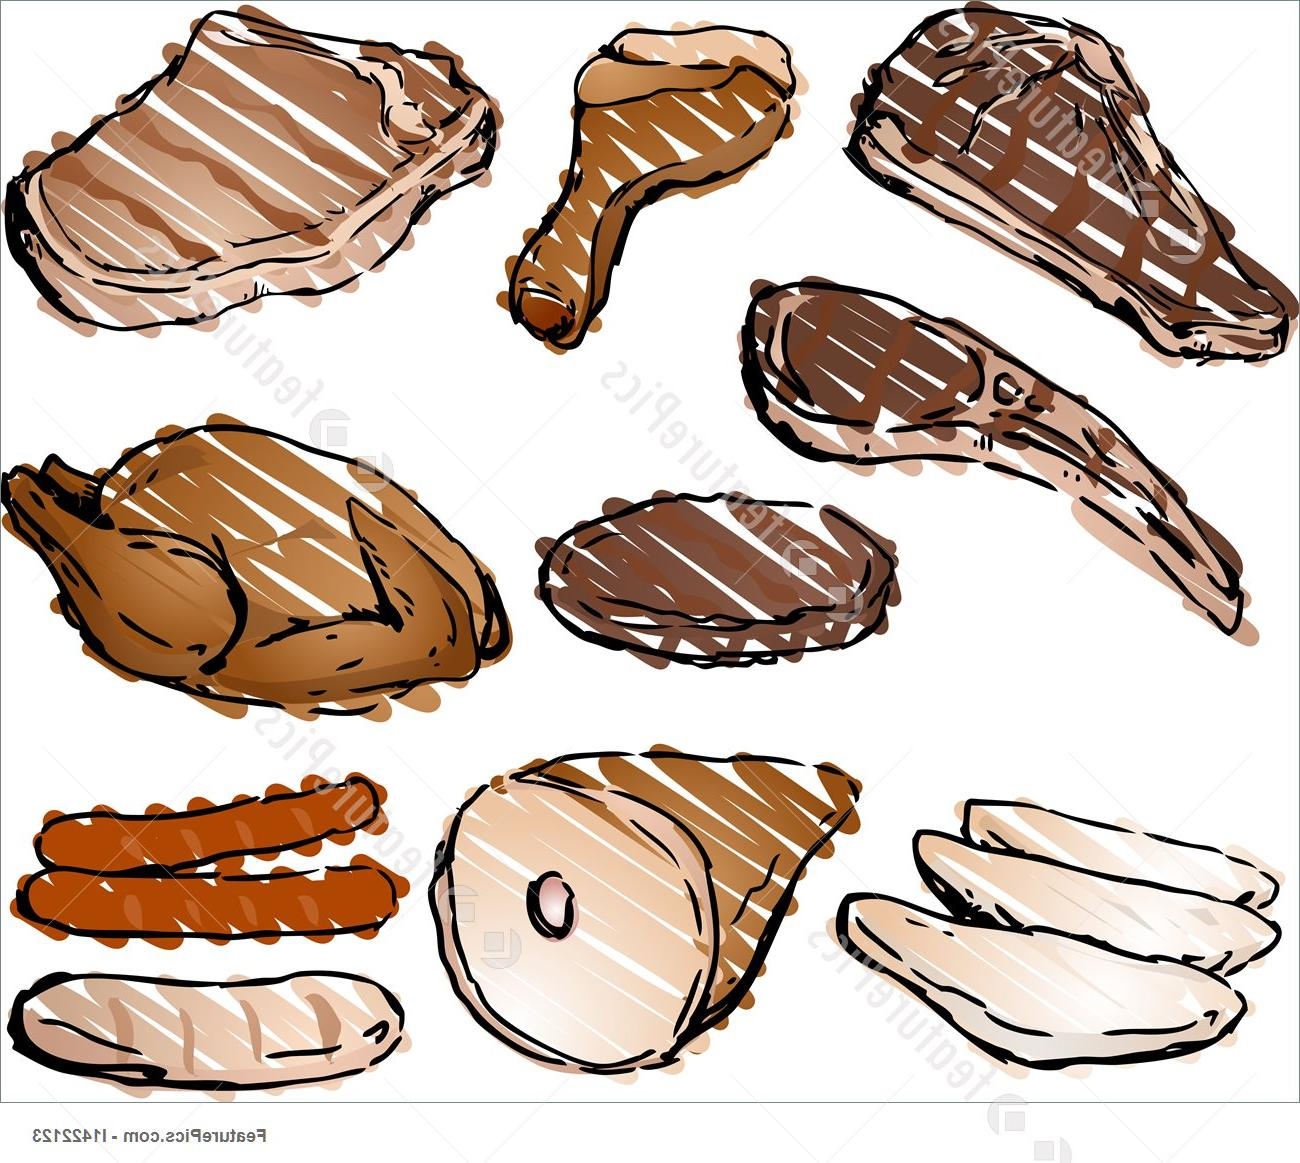 Best Free Cooked Steak Clip Art Library » Free Vector Art, Images.